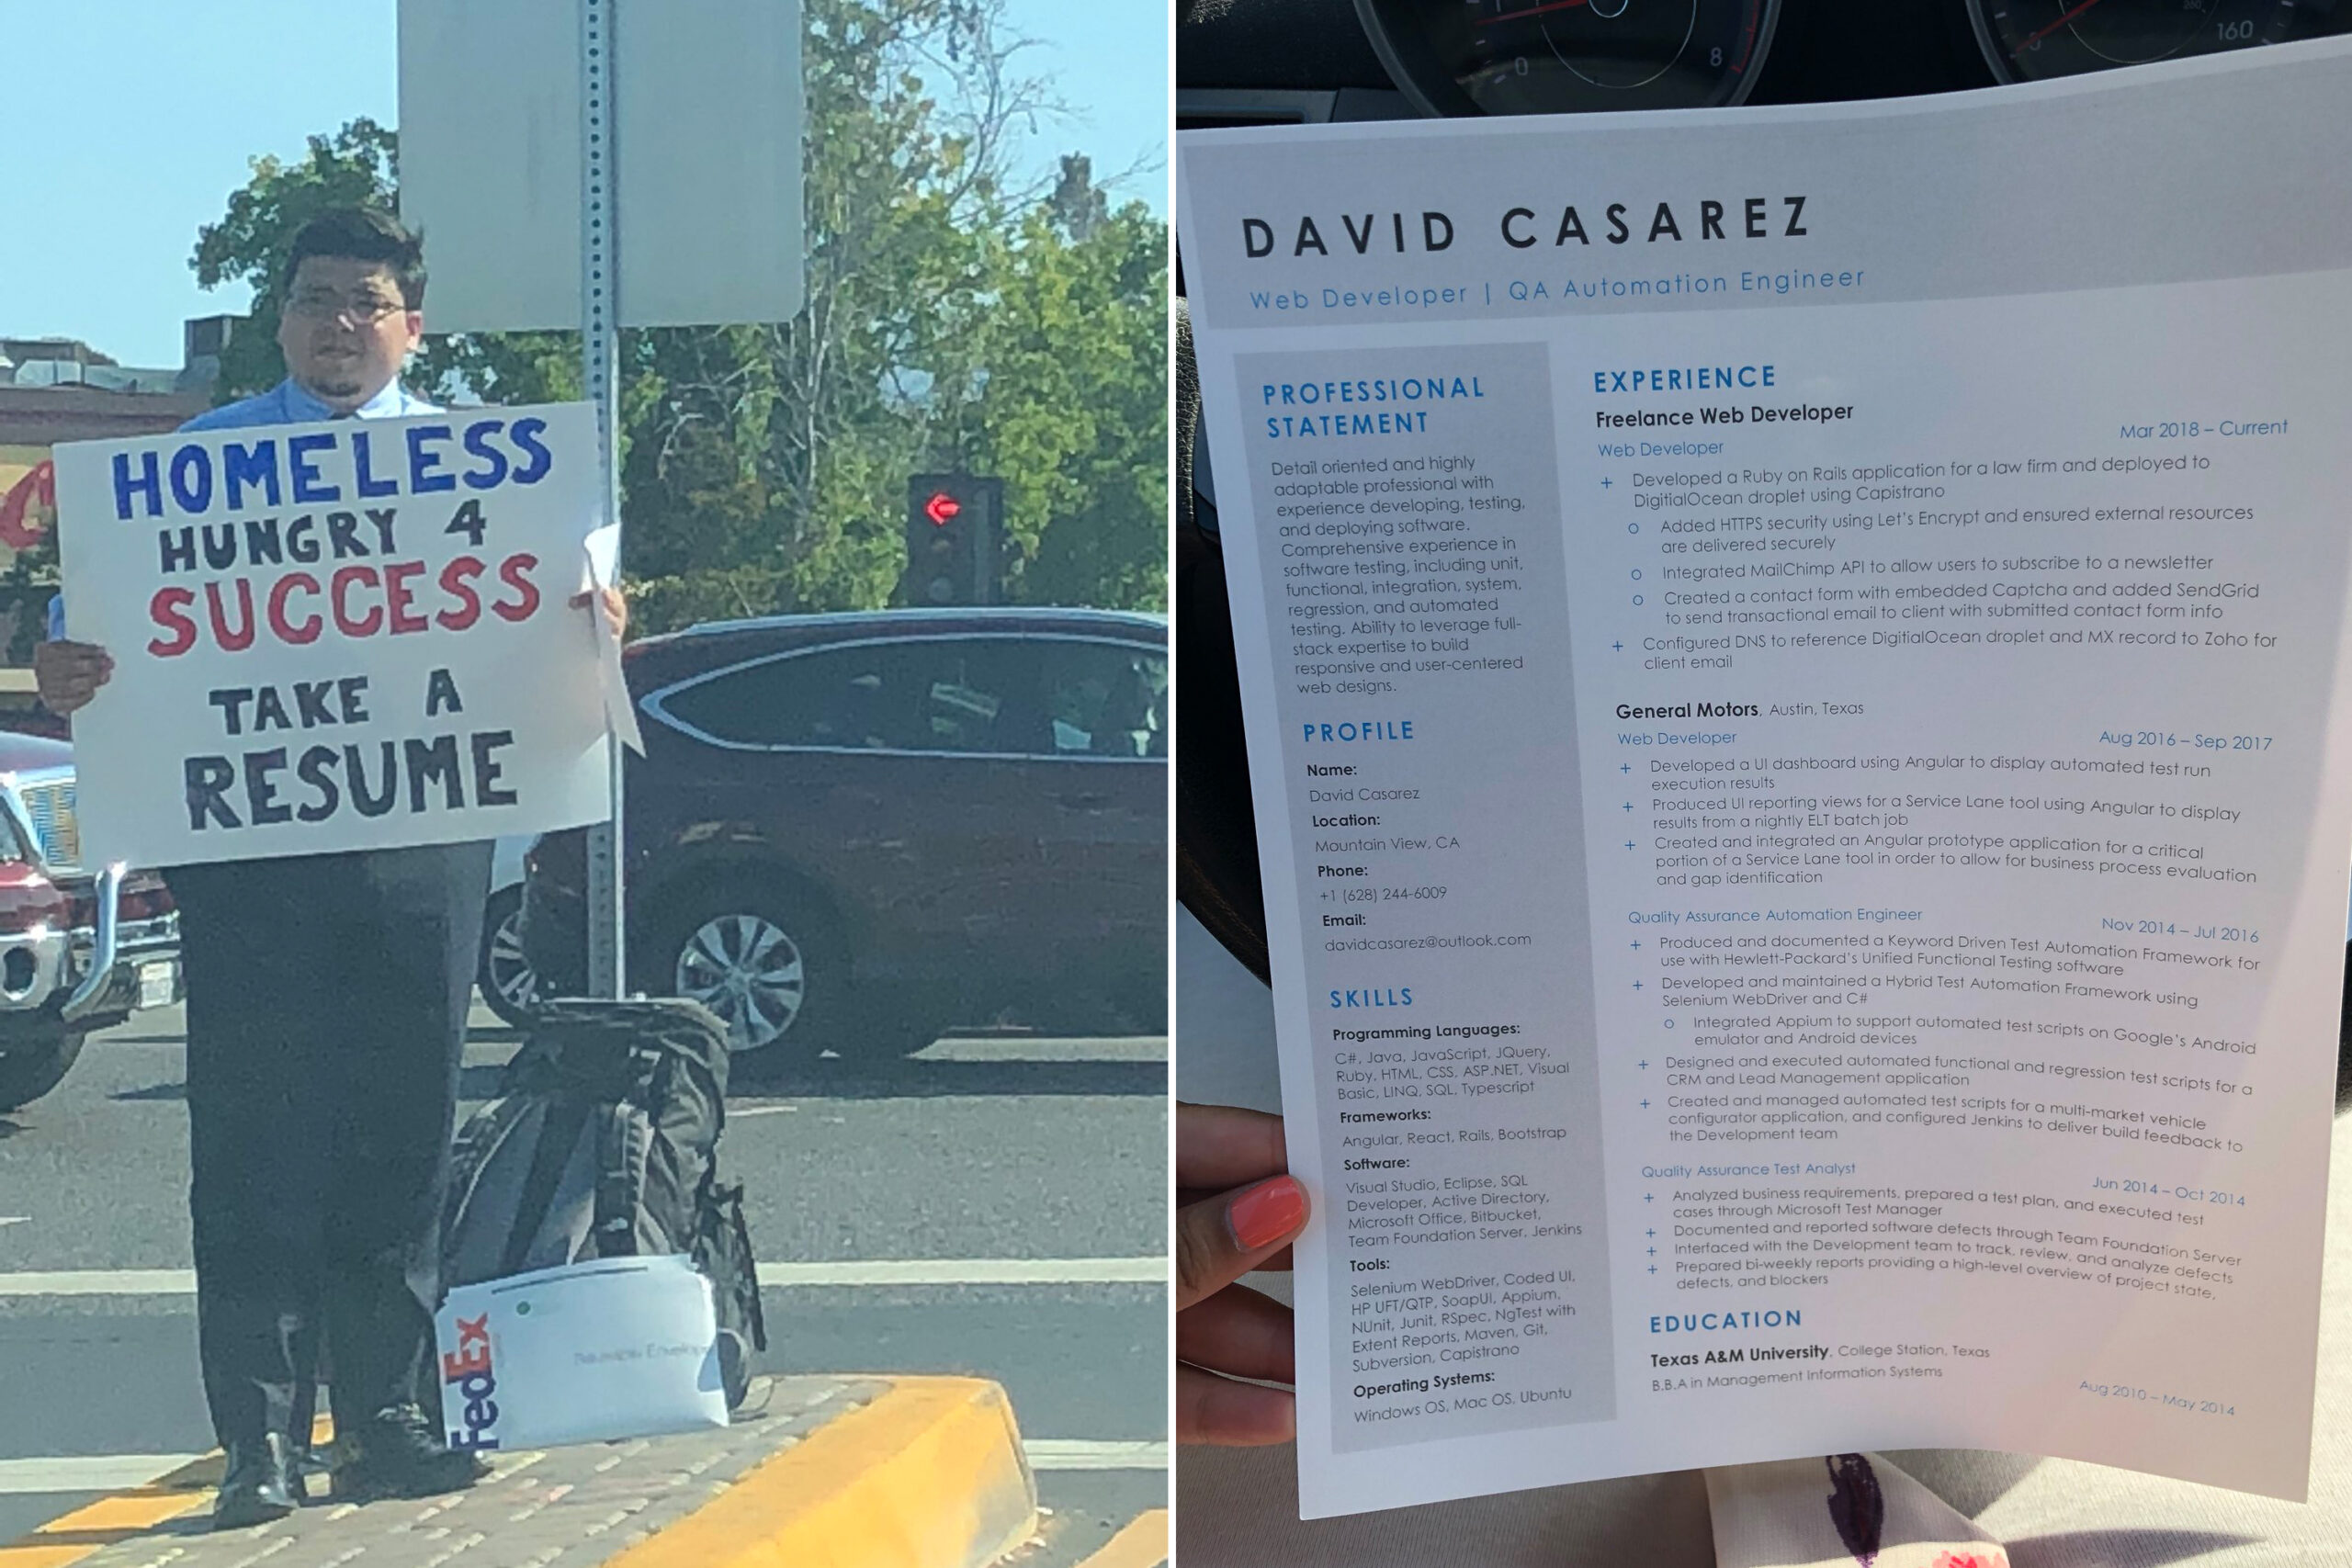 homeless man hands out resumes gets over job offers david careers resume review homless Resume David Careers Resume Review